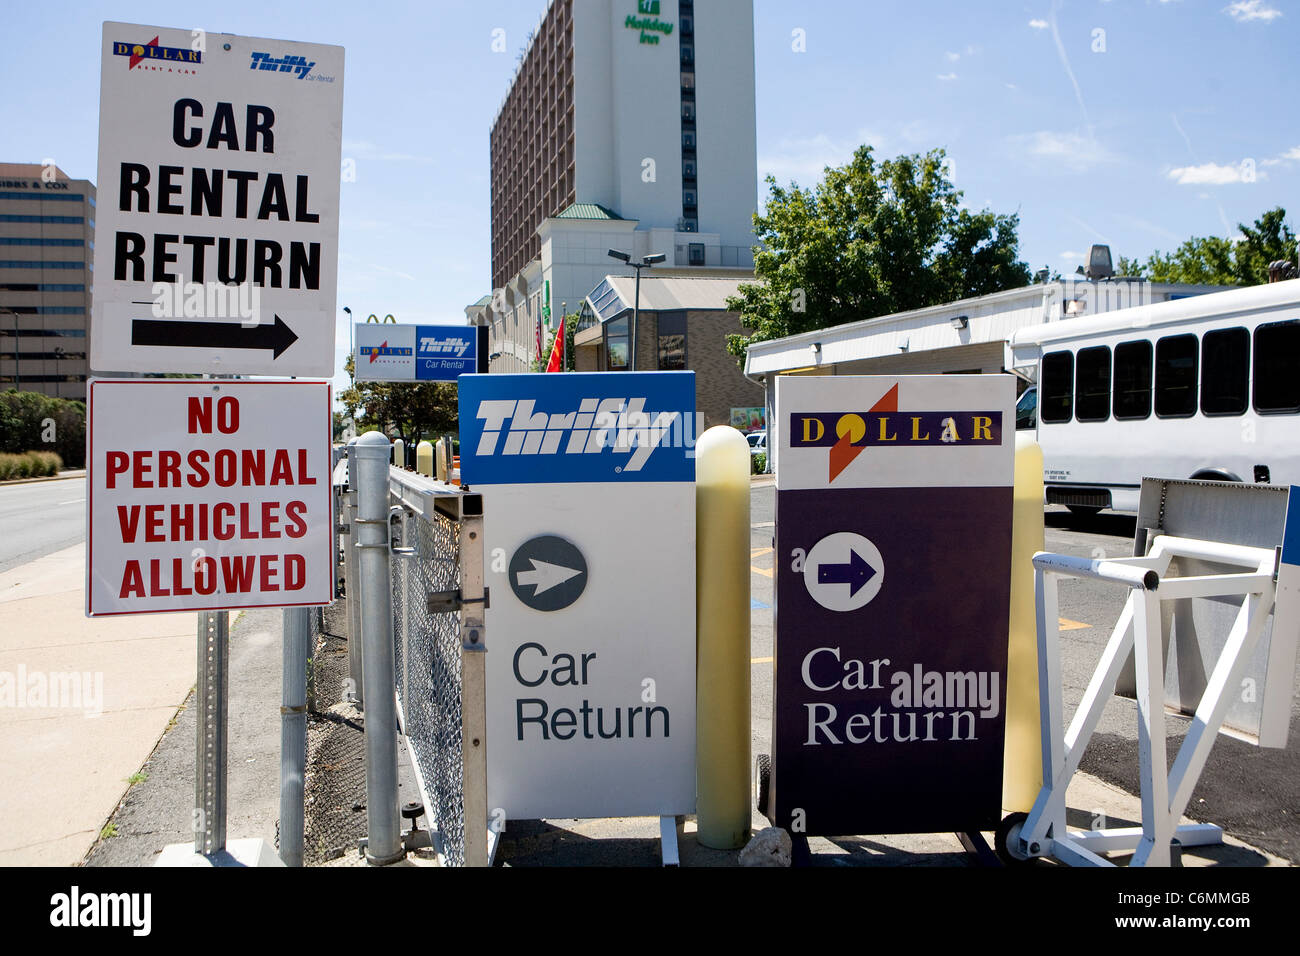 Thrifty Car Rental Near San Diego Airport